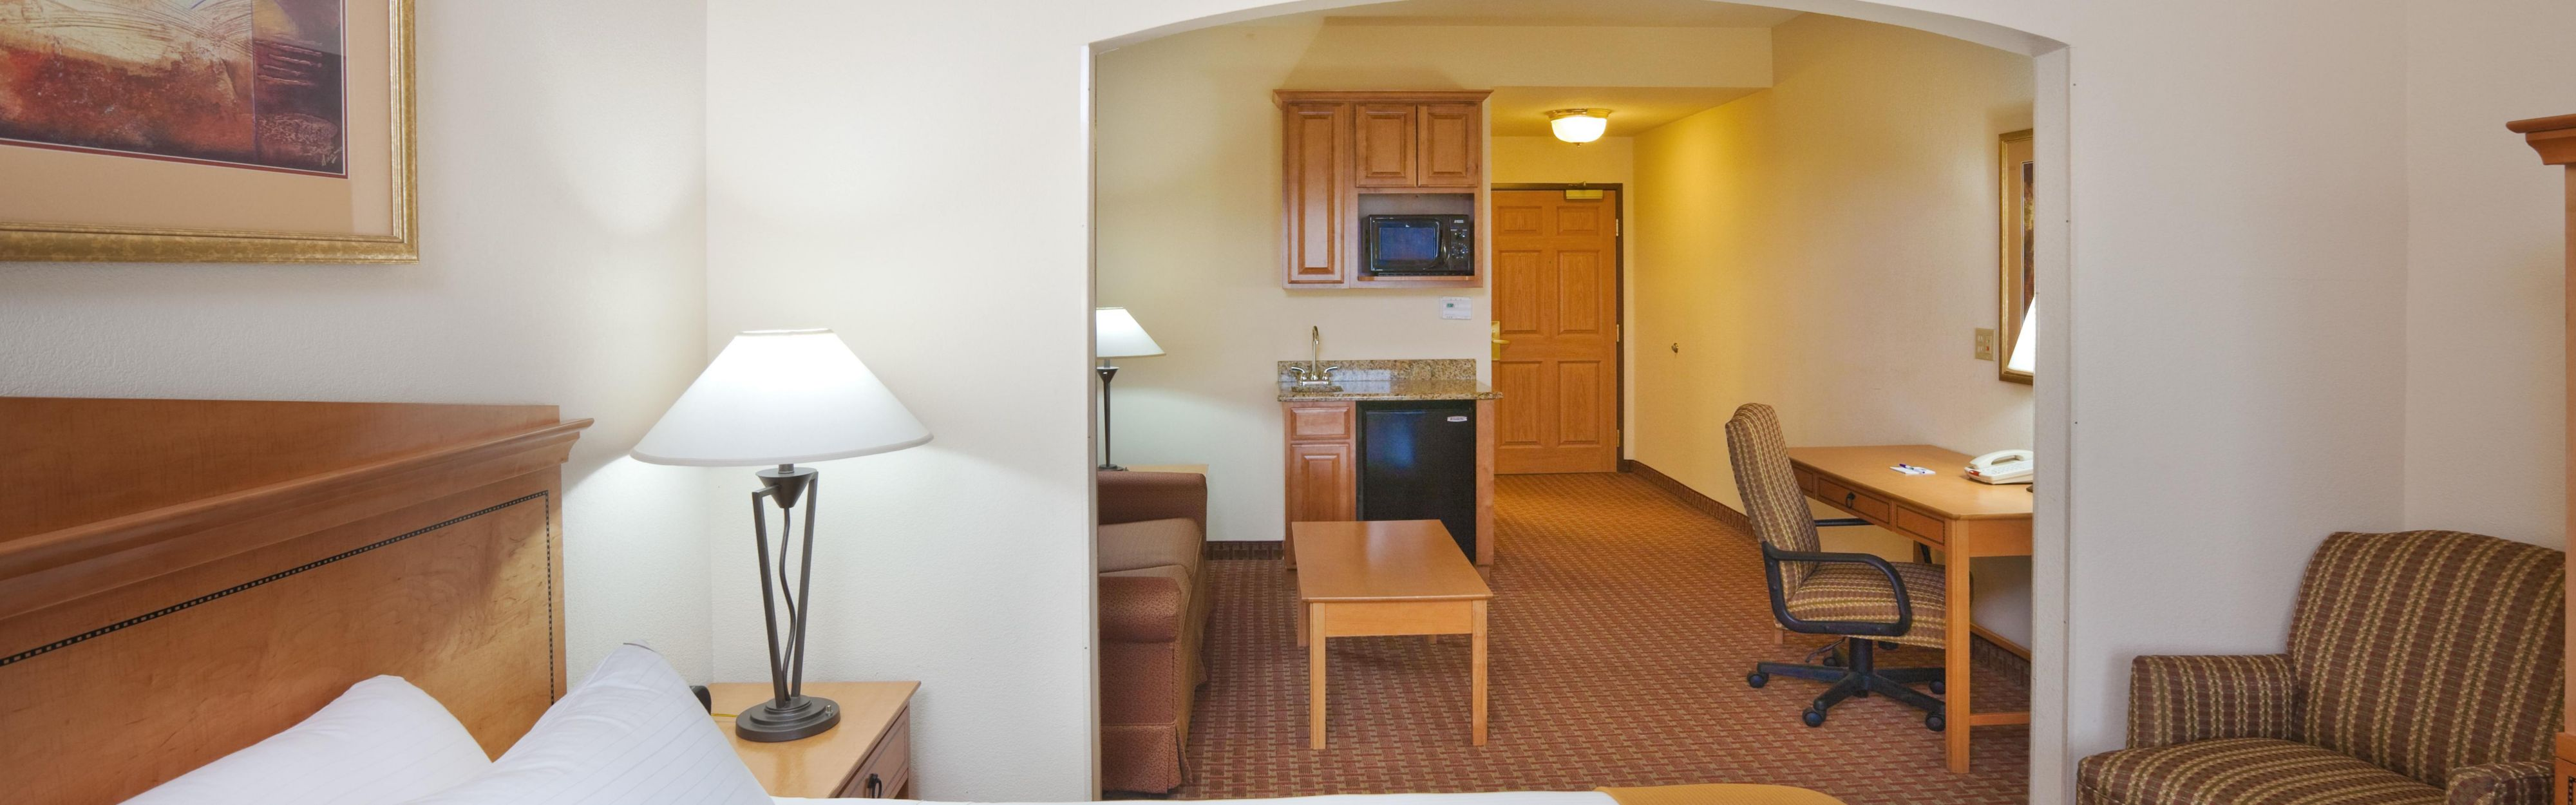 Holiday Inn Express & Suites Jenks image 1